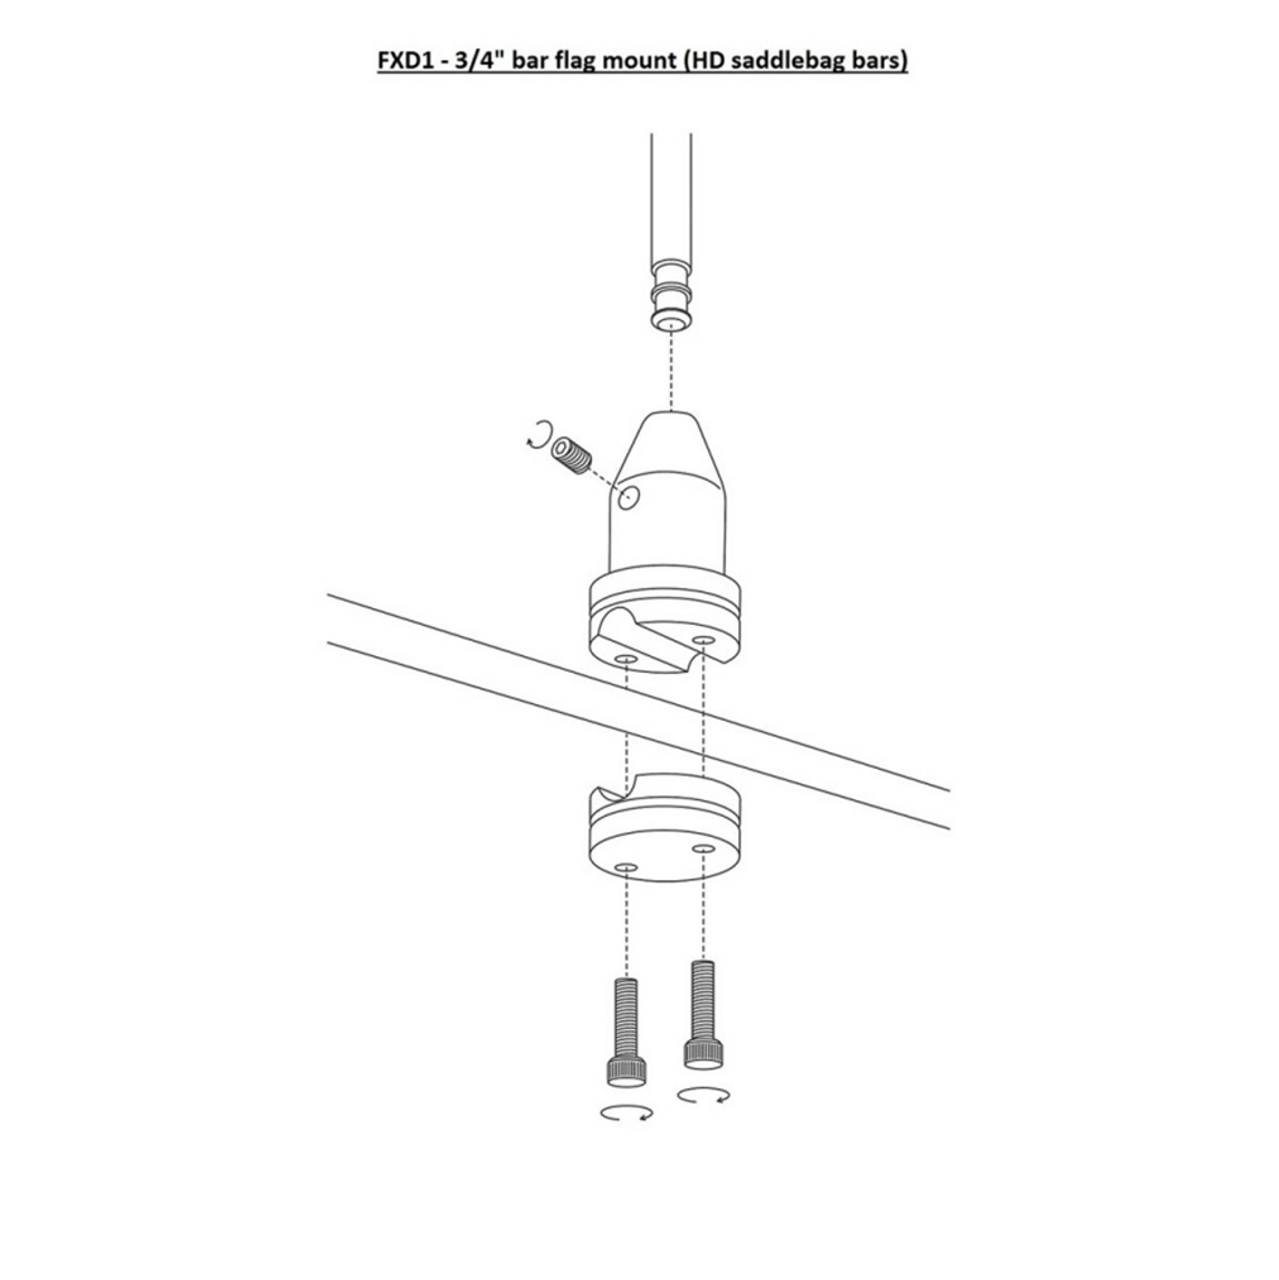 RFM-FXD1 installation diagram (exploded view)